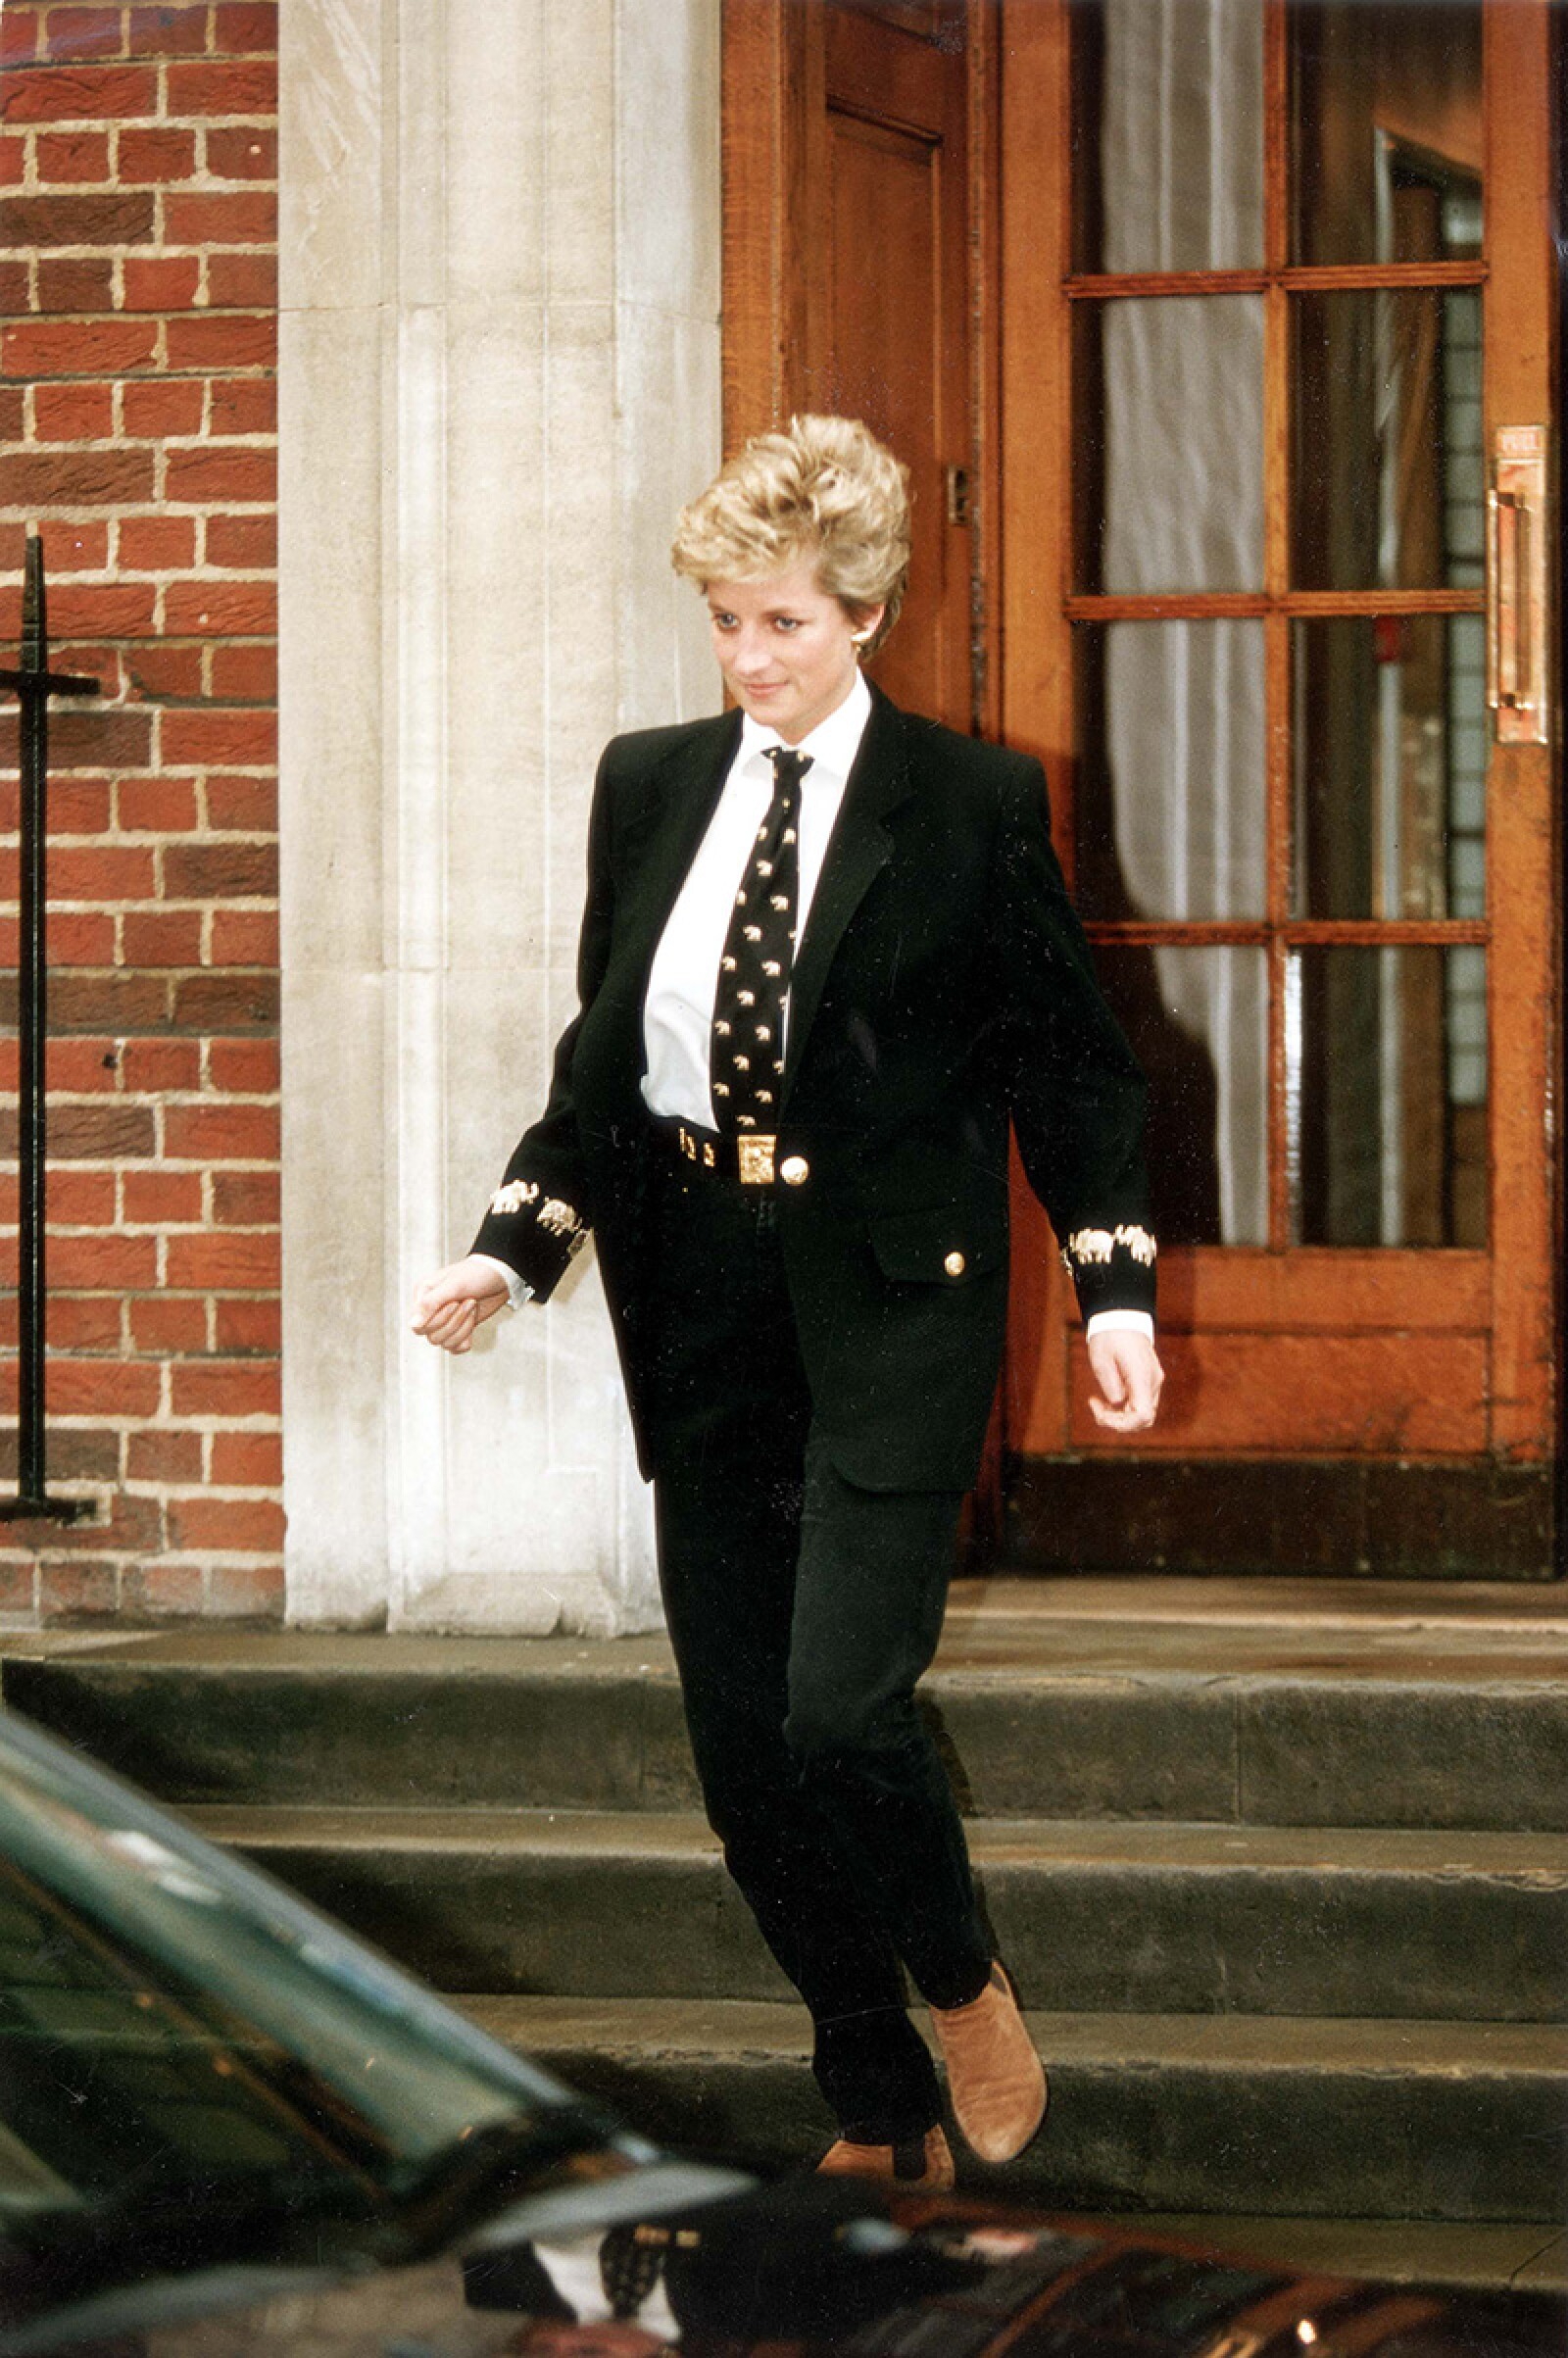 Diana Princess Of Wales - March 1994 Di Leaves St. Marys Hospital. Princess Diana Stepped Out Yesterday...but Whether She Was In Style Was A Matter Of Fierce Controversy. She Wore A Black Jacket And Tie Embroided With Gold Elephants And Black Jeans H